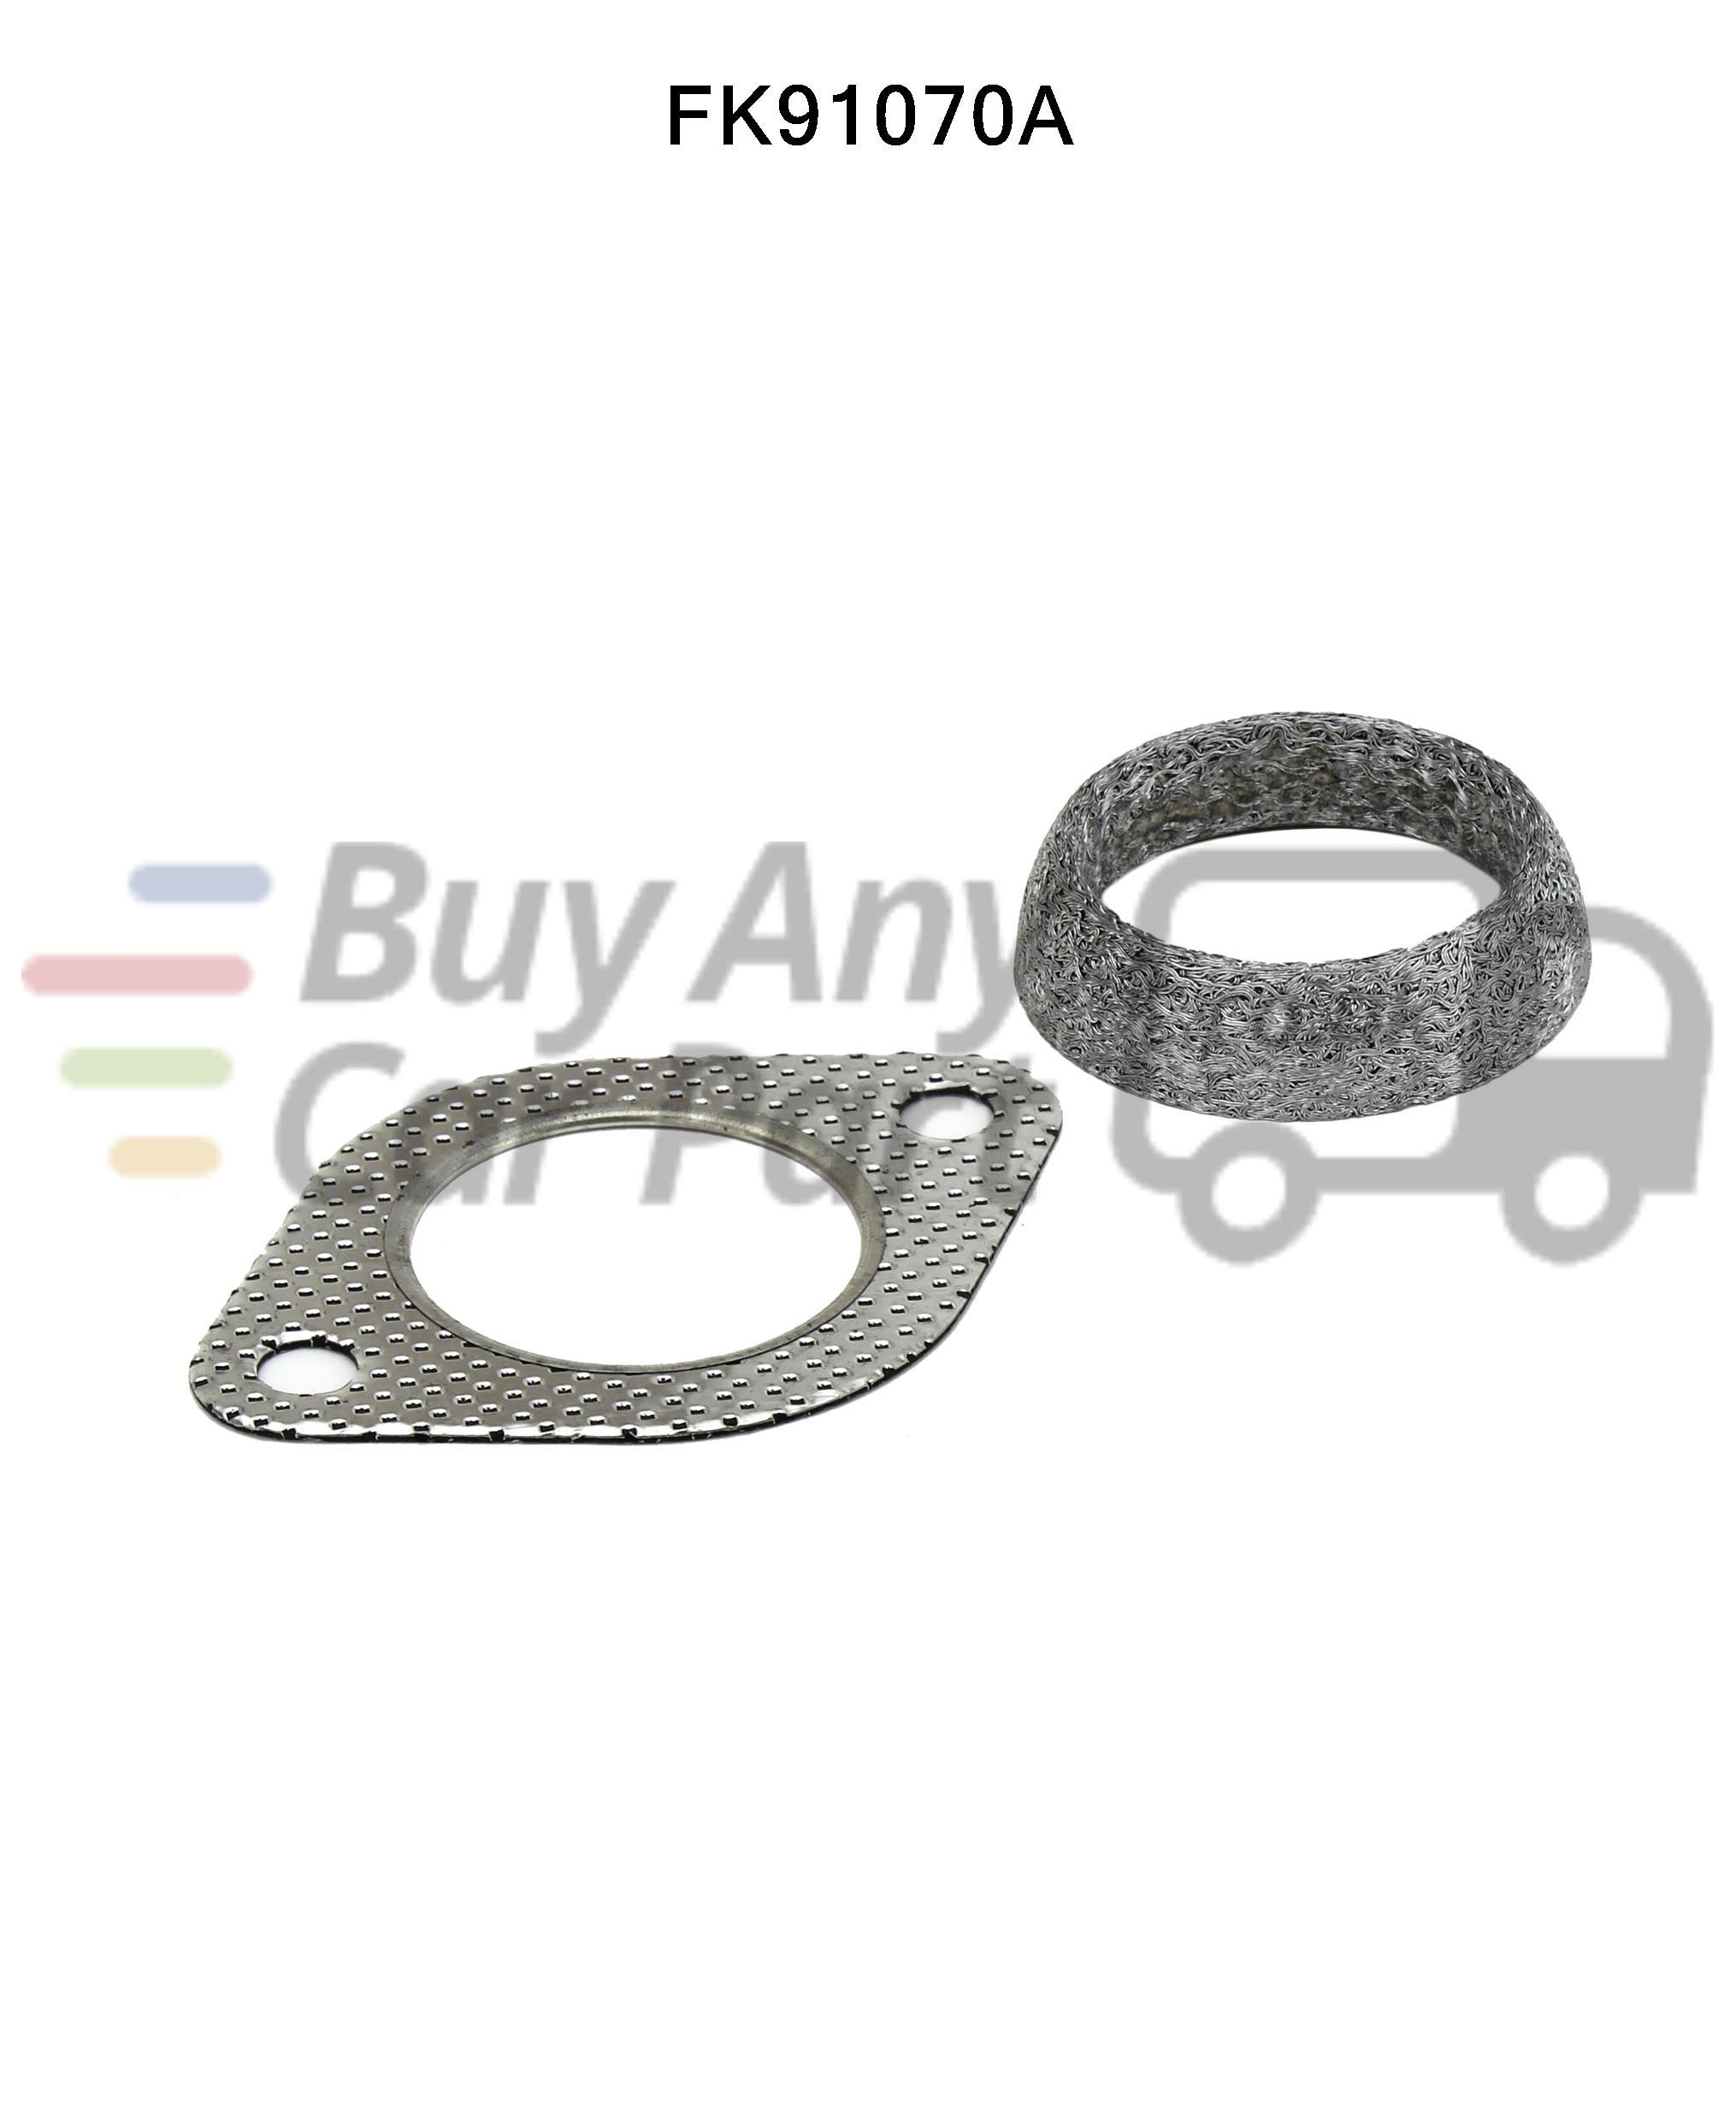 Subaru Forester 2 0 09 Approved Petrol Cat Fitting